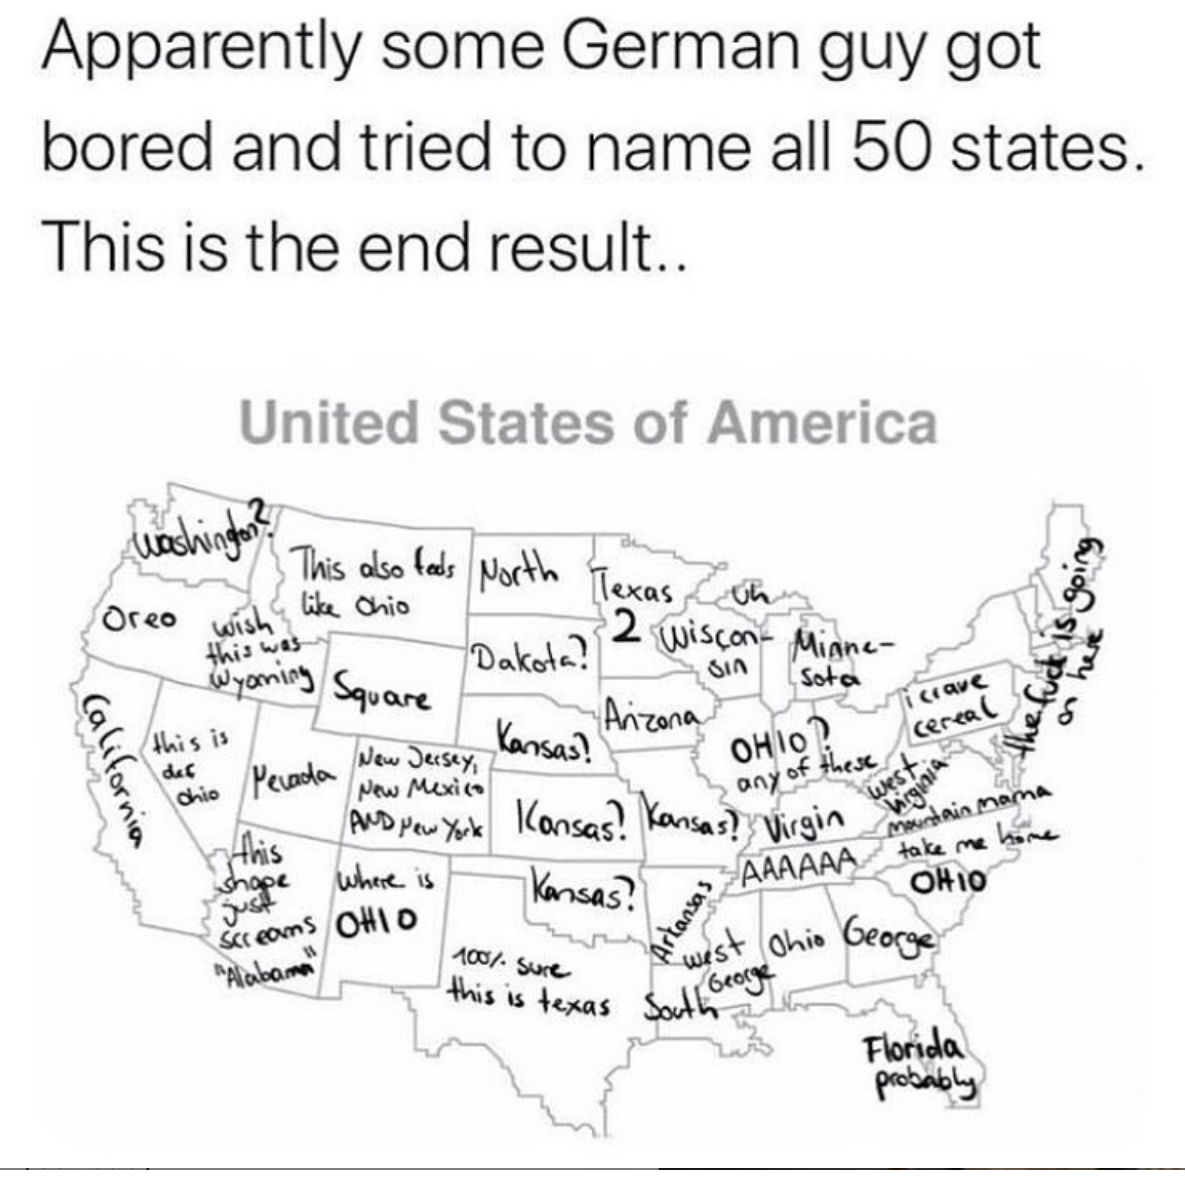 german guy tried to name all 50 states meme